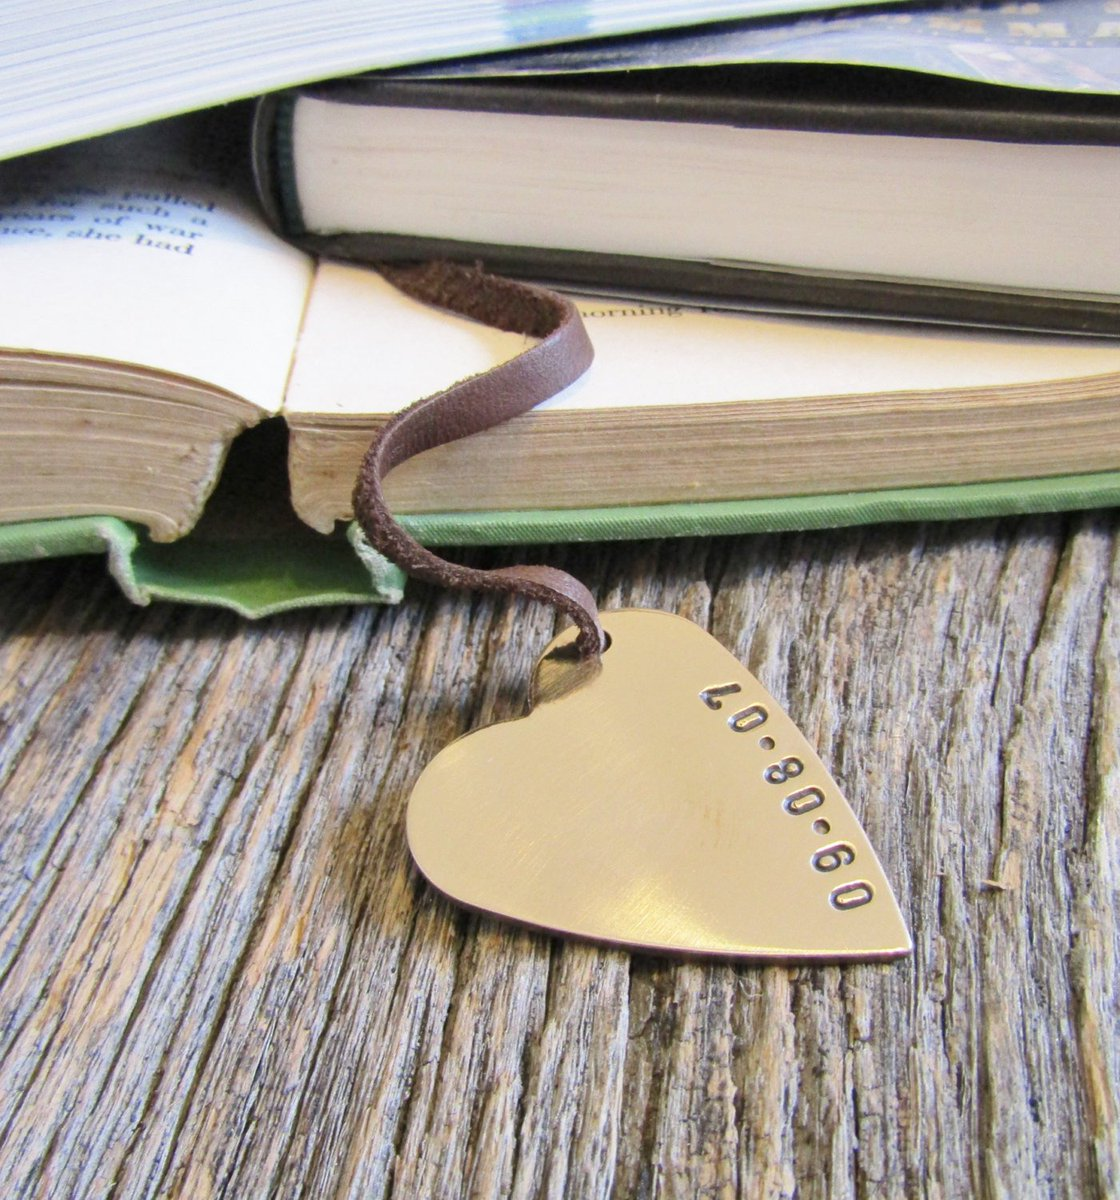 Anniversary Bookmark Personalized Wedding Bookmark for Him Bookmarks for Wife Anniversary Gift Bronze Book Mark Copper Gift for Husband Men http://tuppu.net/653c1bf4 #CandTCustomLures #Shopify #Books_and_zines